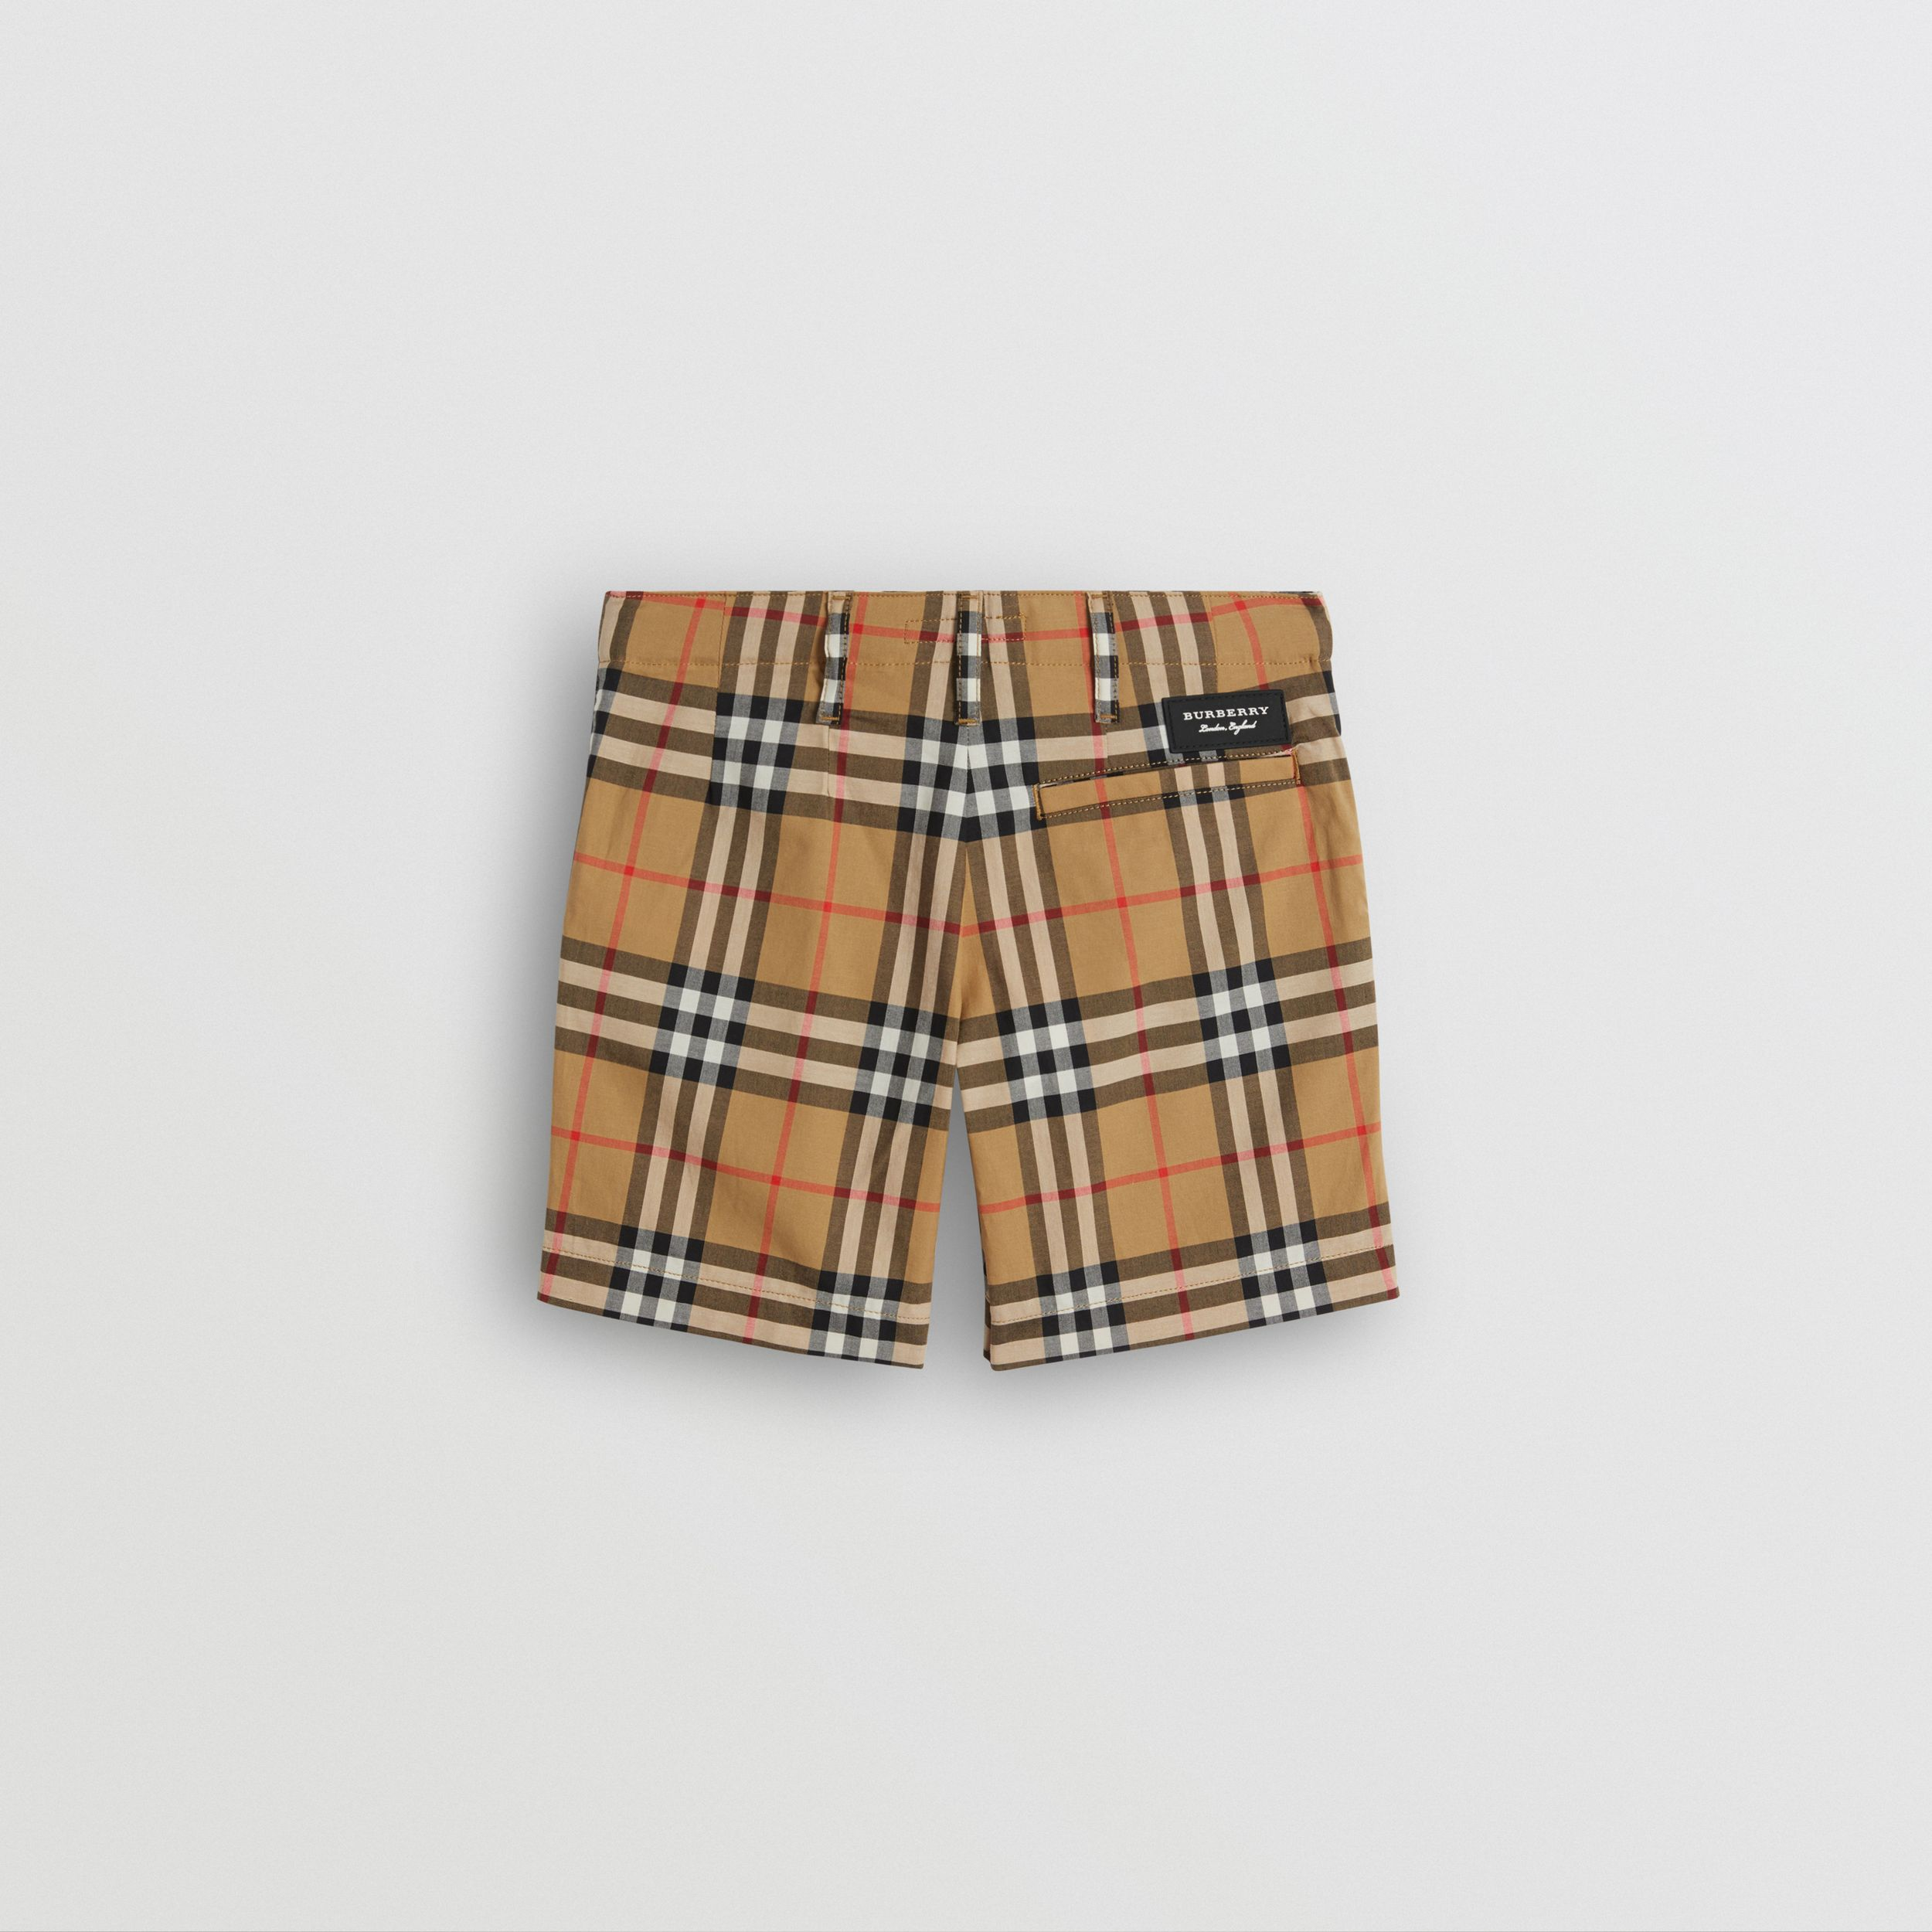 Vintage Check Cotton Tailored Shorts in Antique Yellow | Burberry United Kingdom - 4